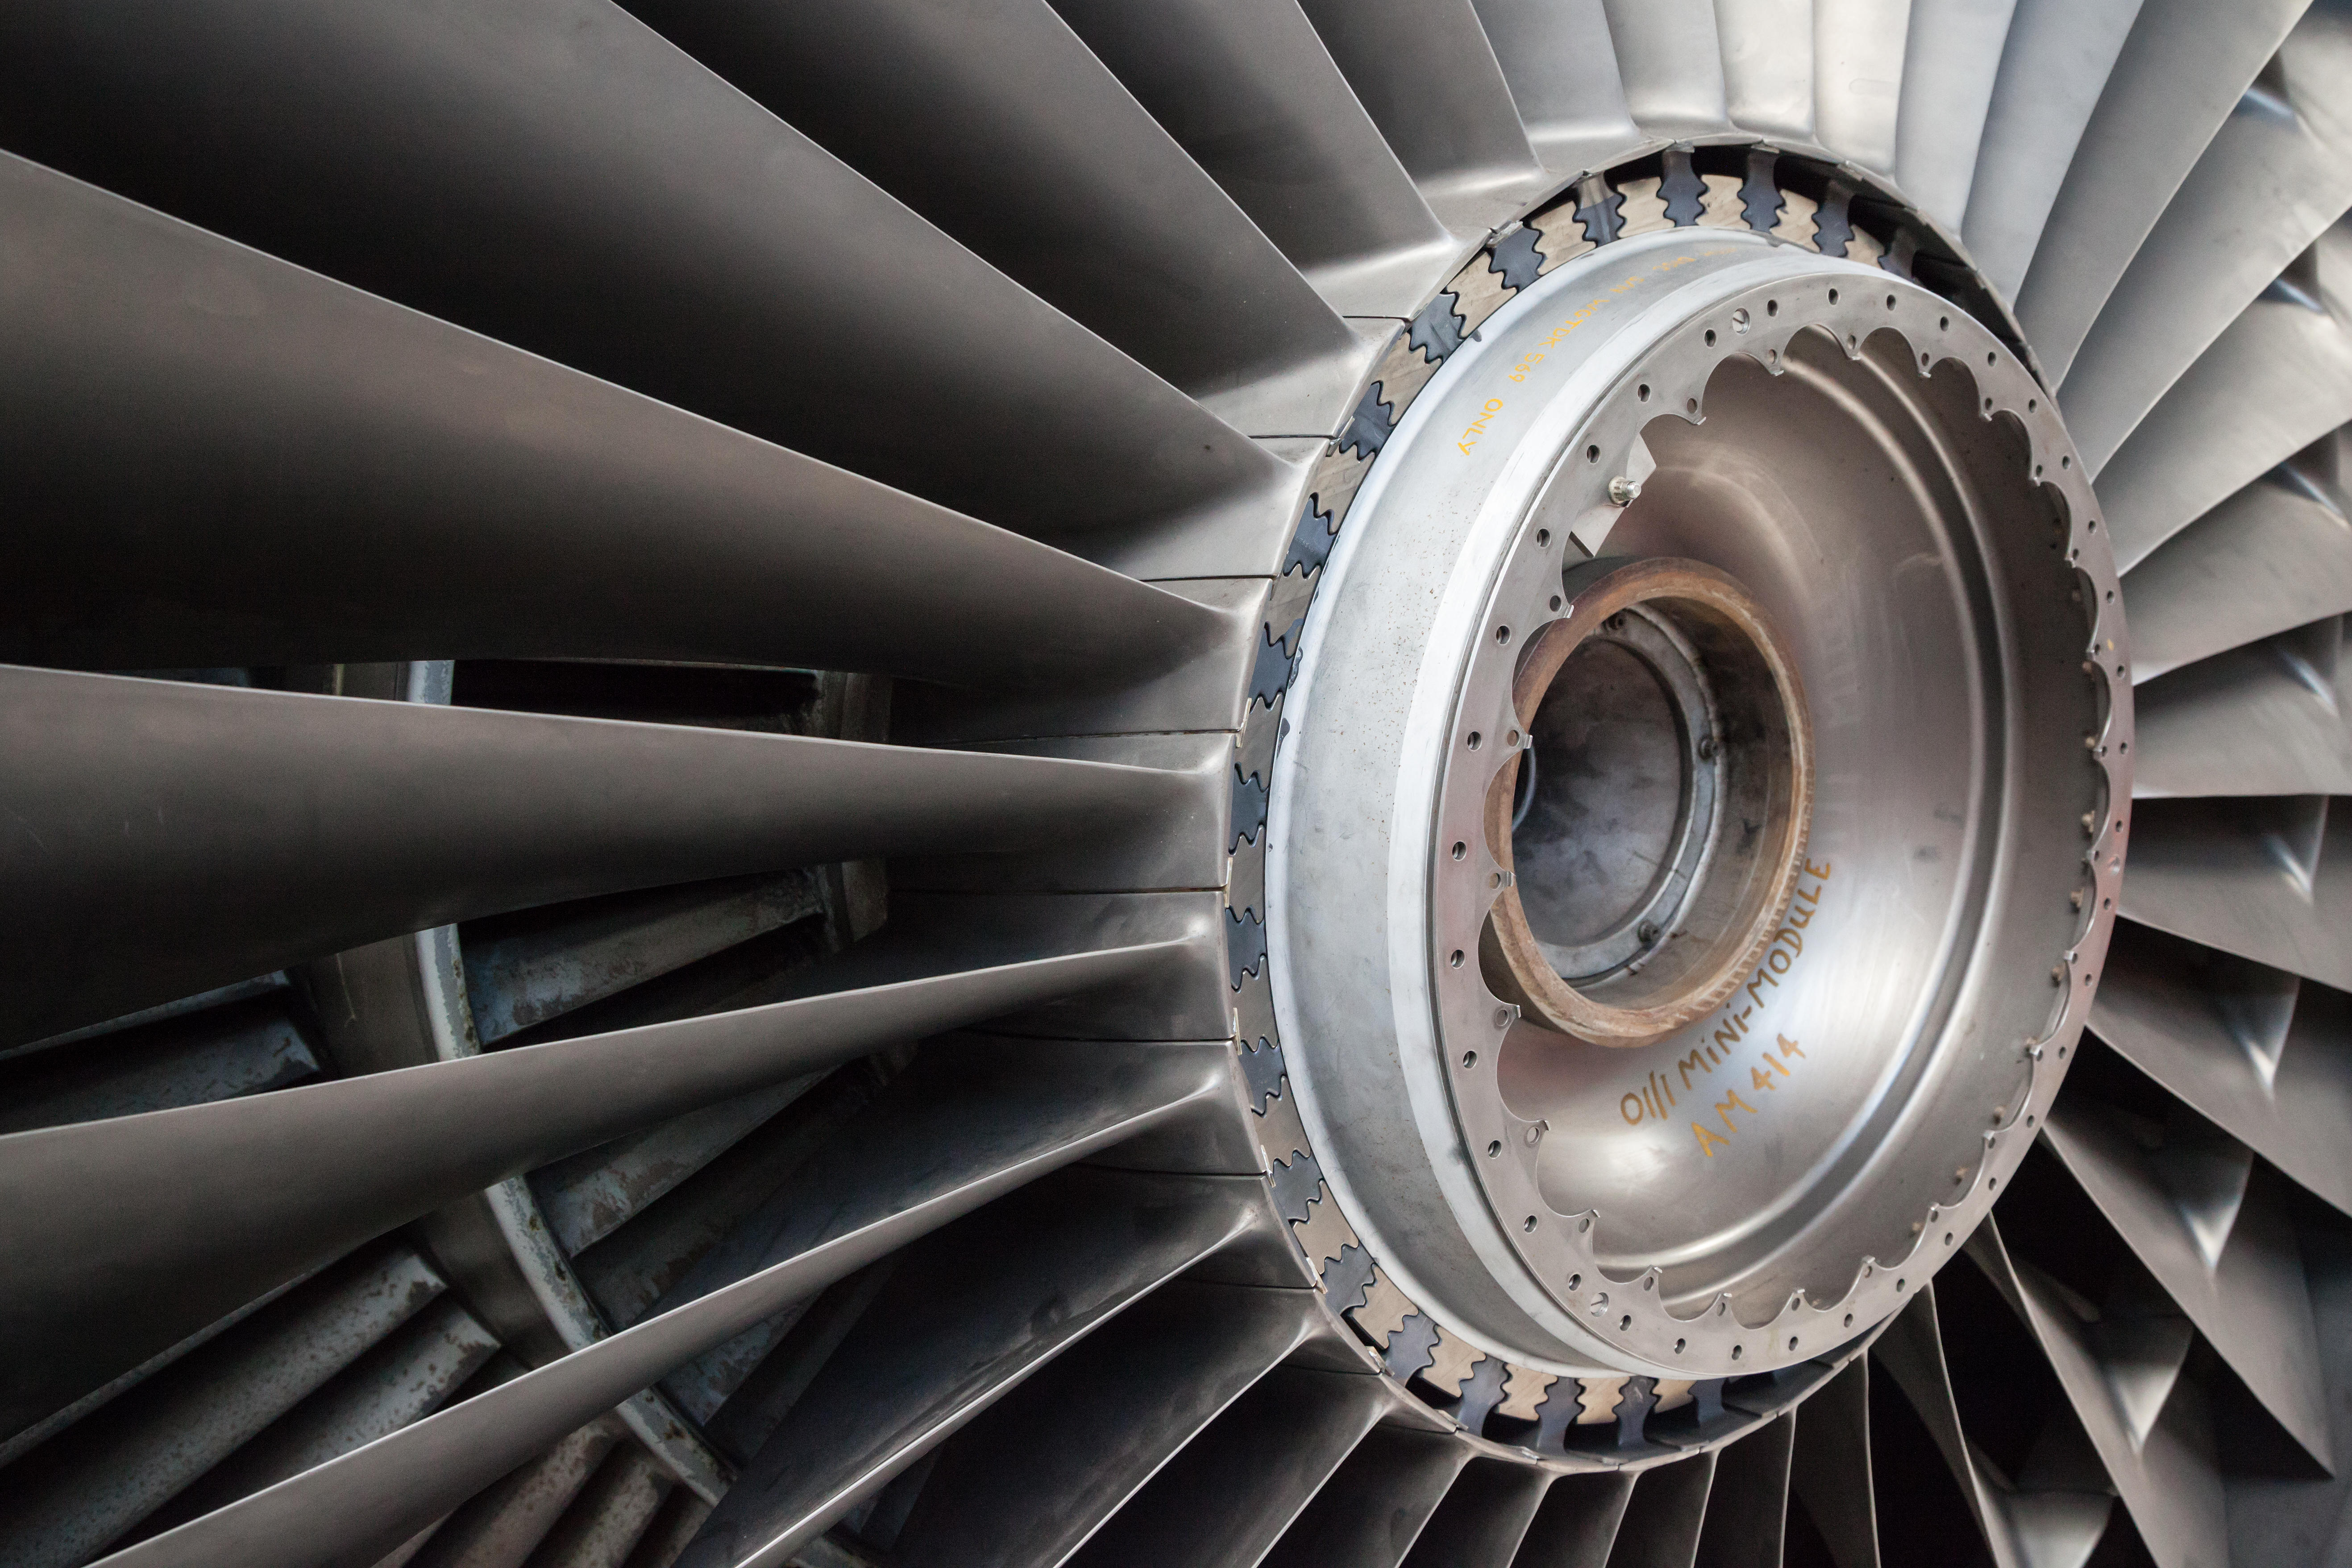 A view of the front fan from a Rolls-Royce RB211 turbofan engine.